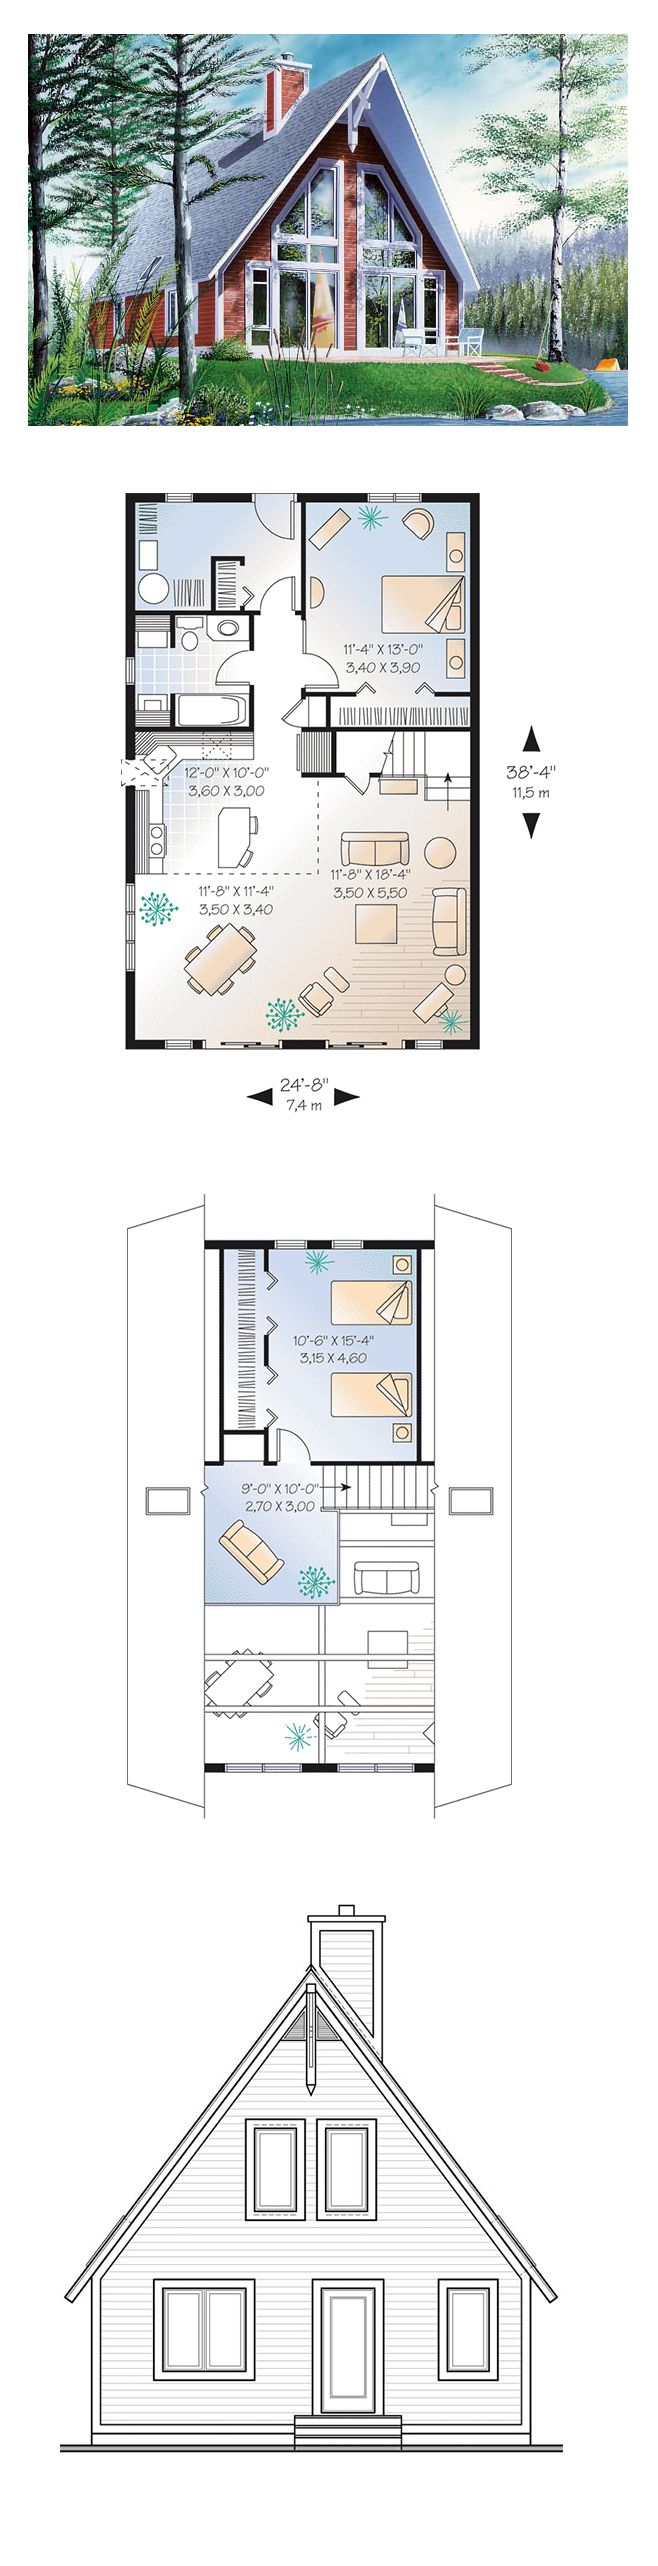 7469 best images about home interior design on pinterest for Two bedroom house plans with basement